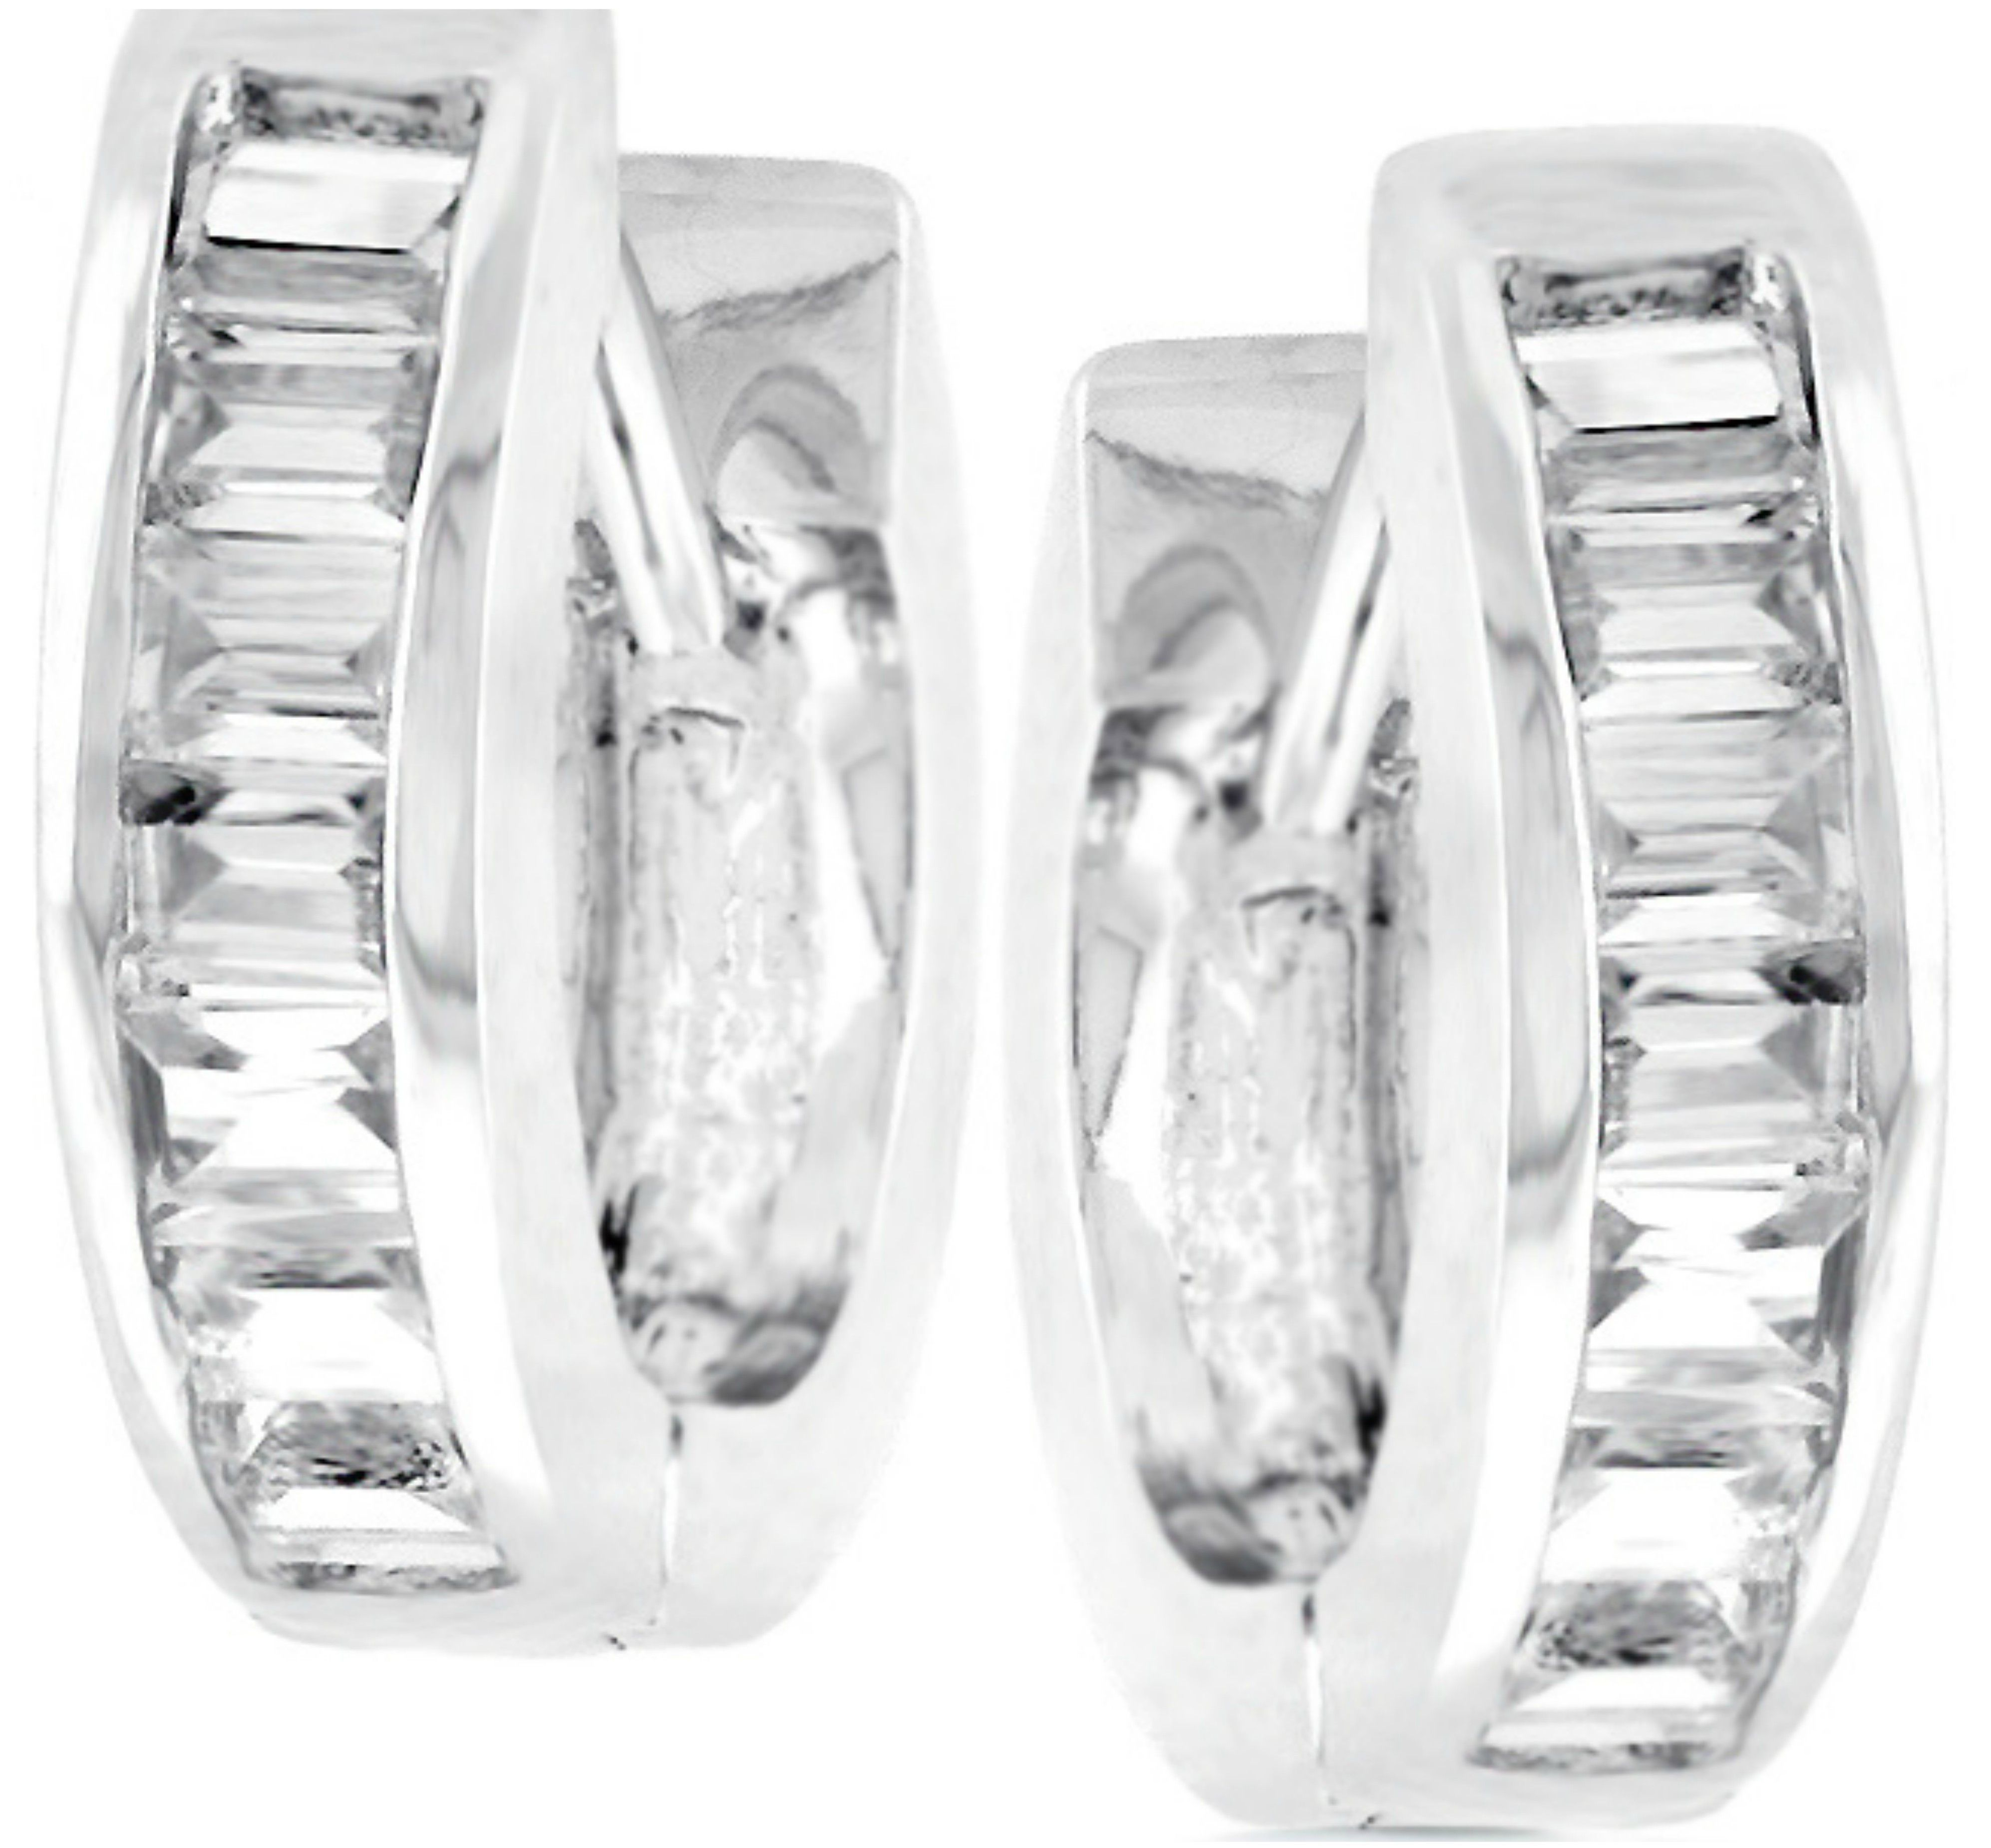 14k White Gold Channel Round Cubic Zirconia Huggies Earrings 22mm